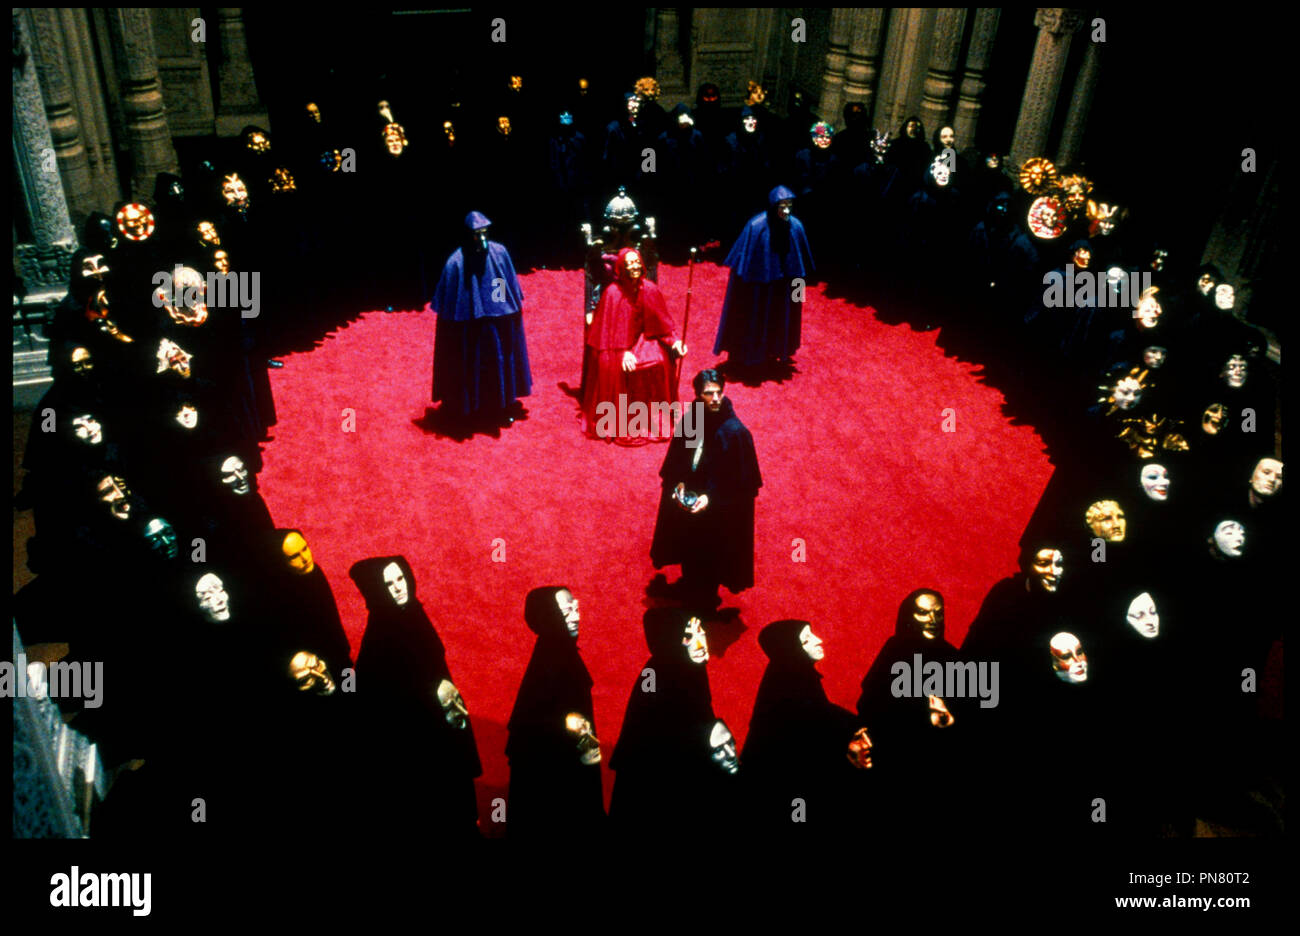 Prod DB © Warner - Hobby Films - Pole Star / DR EYES WIDE SHUT de Stanley Kubrick 1999 USA / GB avec Tom Cruise secte d'apres le roman de Arthur Schnitzler 'TRAUMNOVELLE' - Stock Image